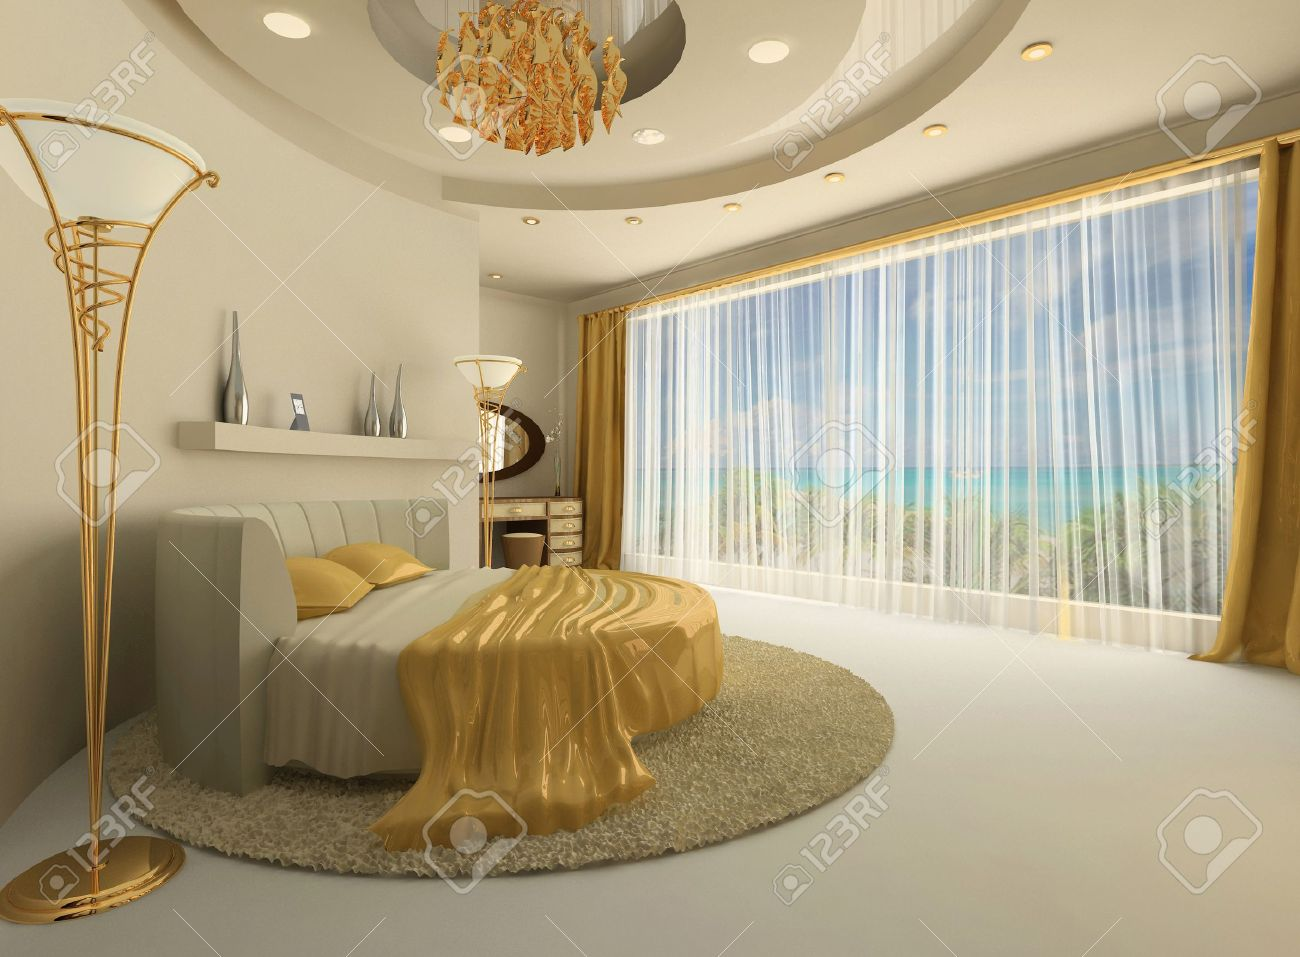 the round bed in a luxurious interior with a large window. round